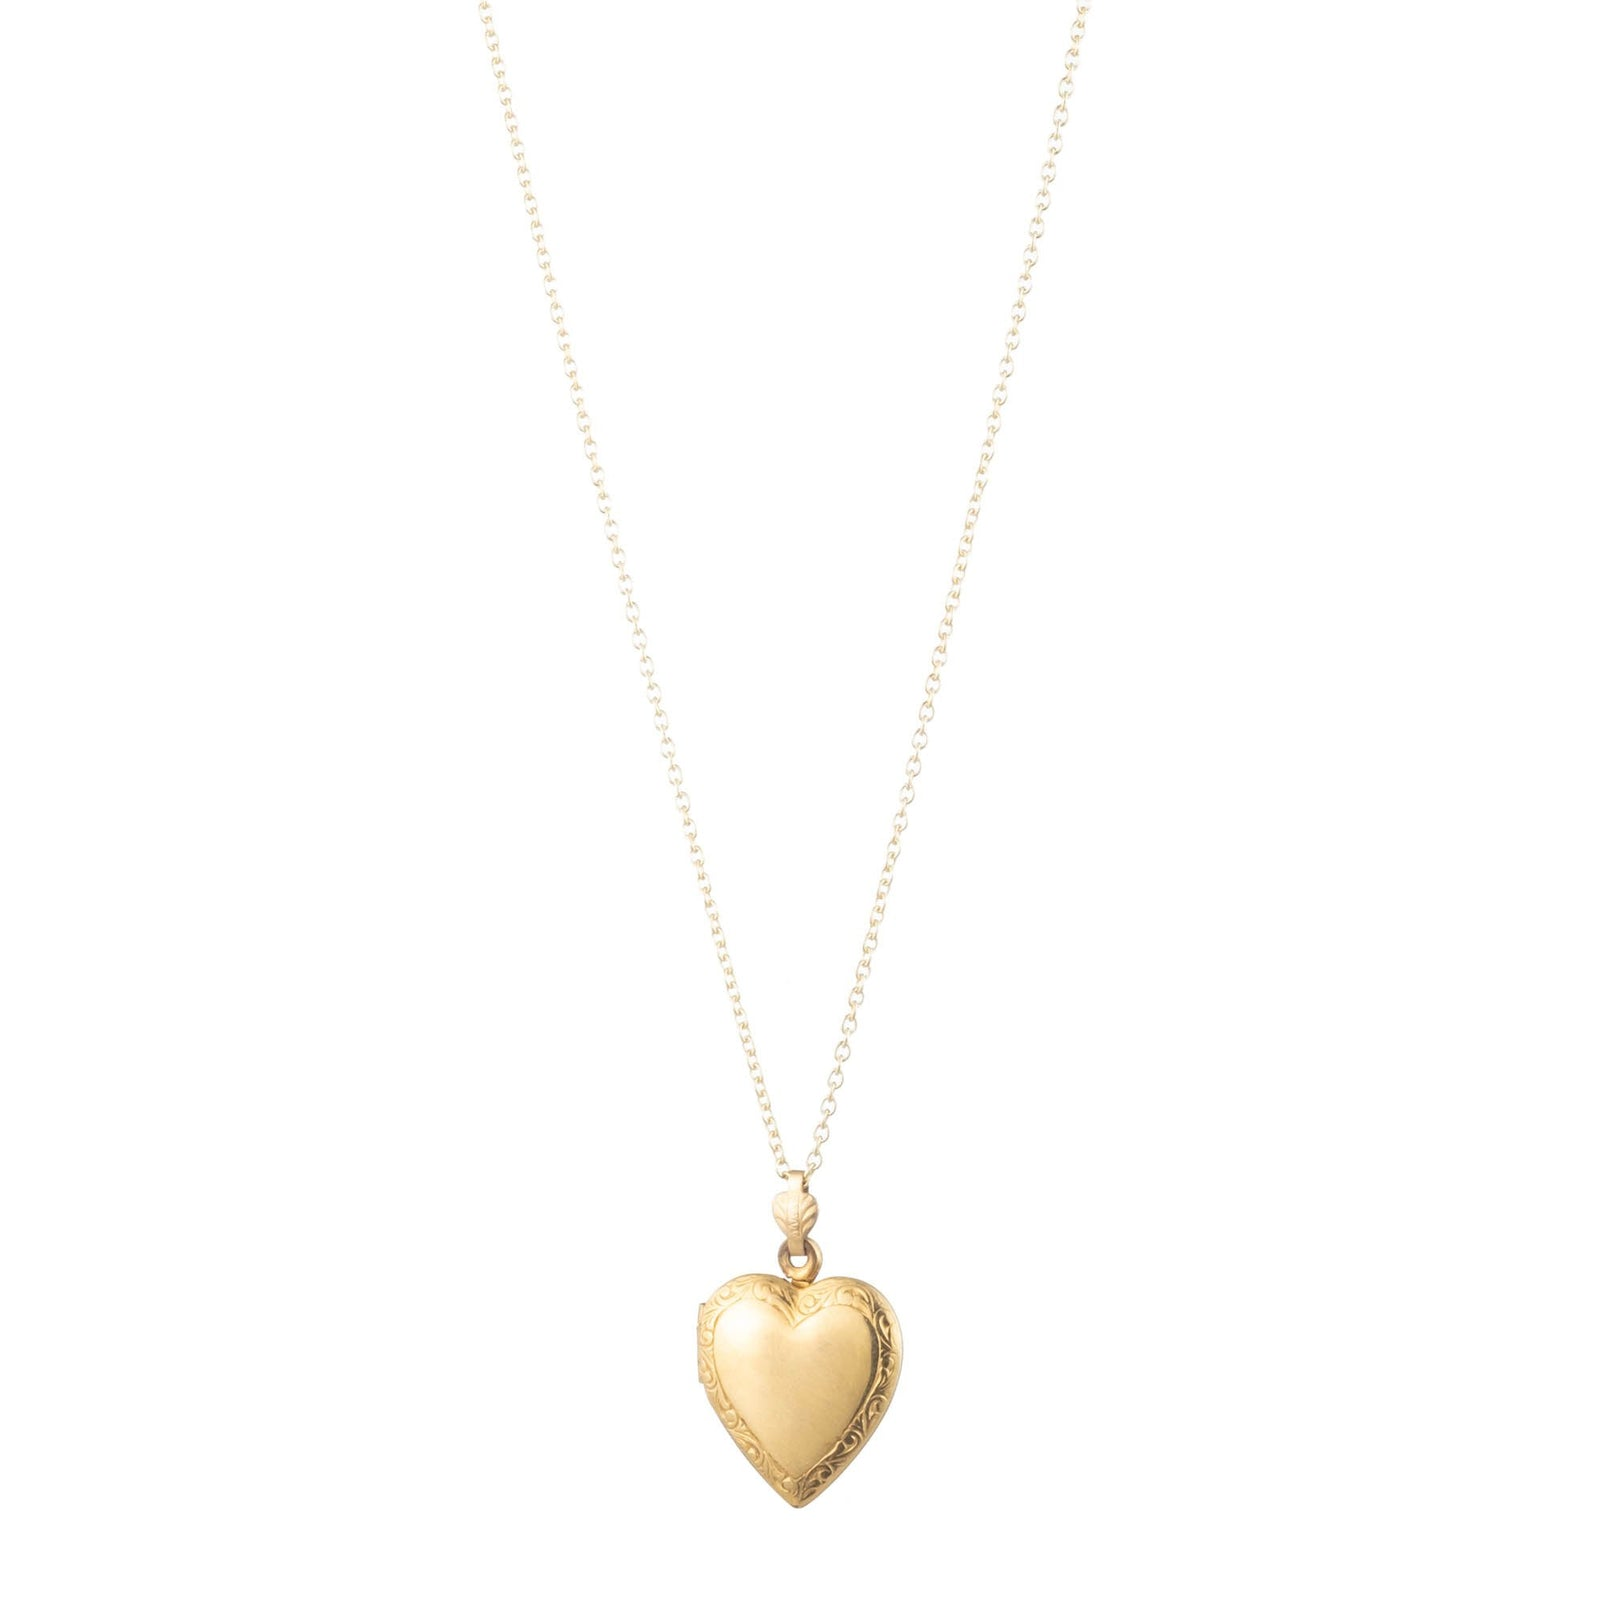 Vintage 1940s 12k Gold Filled Heart Locket with Decorative Border Necklace